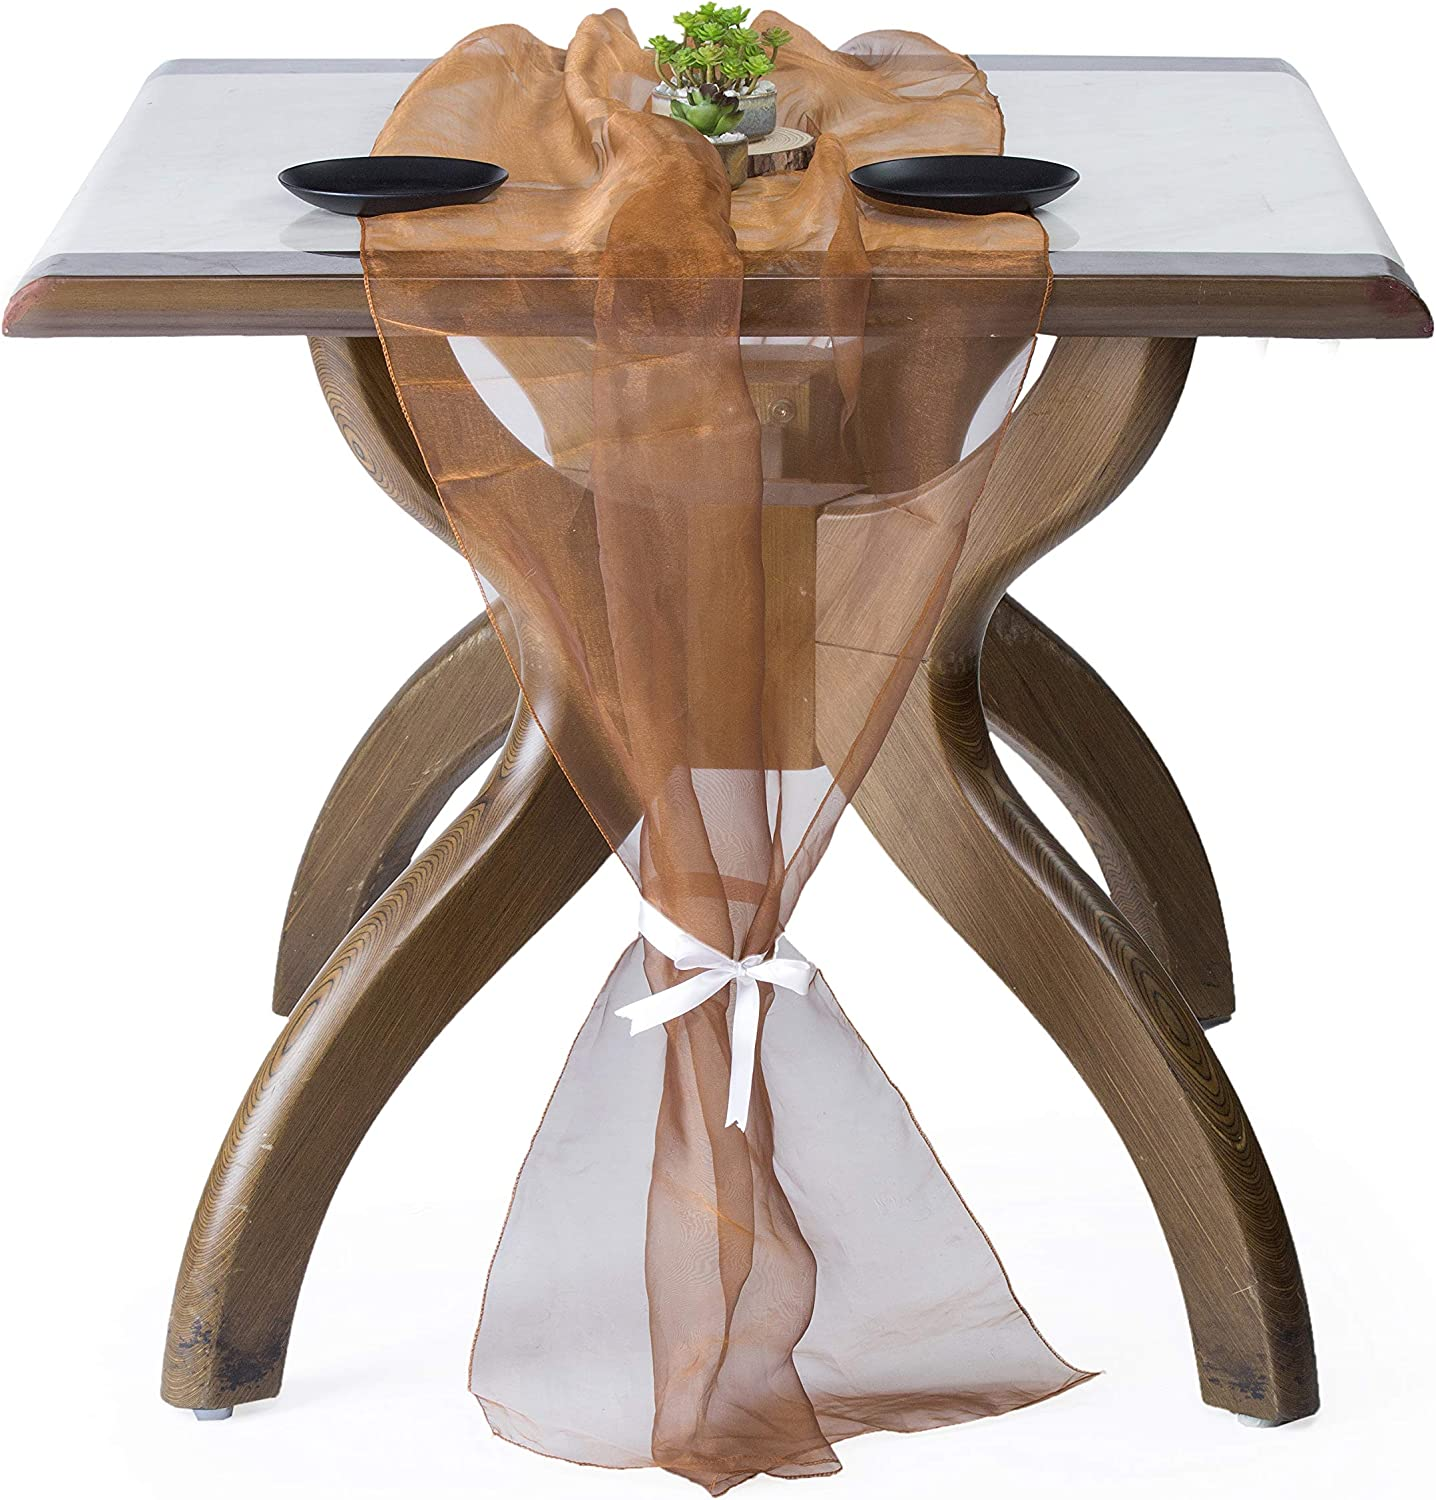 mds Pack Long Beach Mall Elegant of 5 Wedding 29 x Runner Table fo Organza 170 inch 14Ft